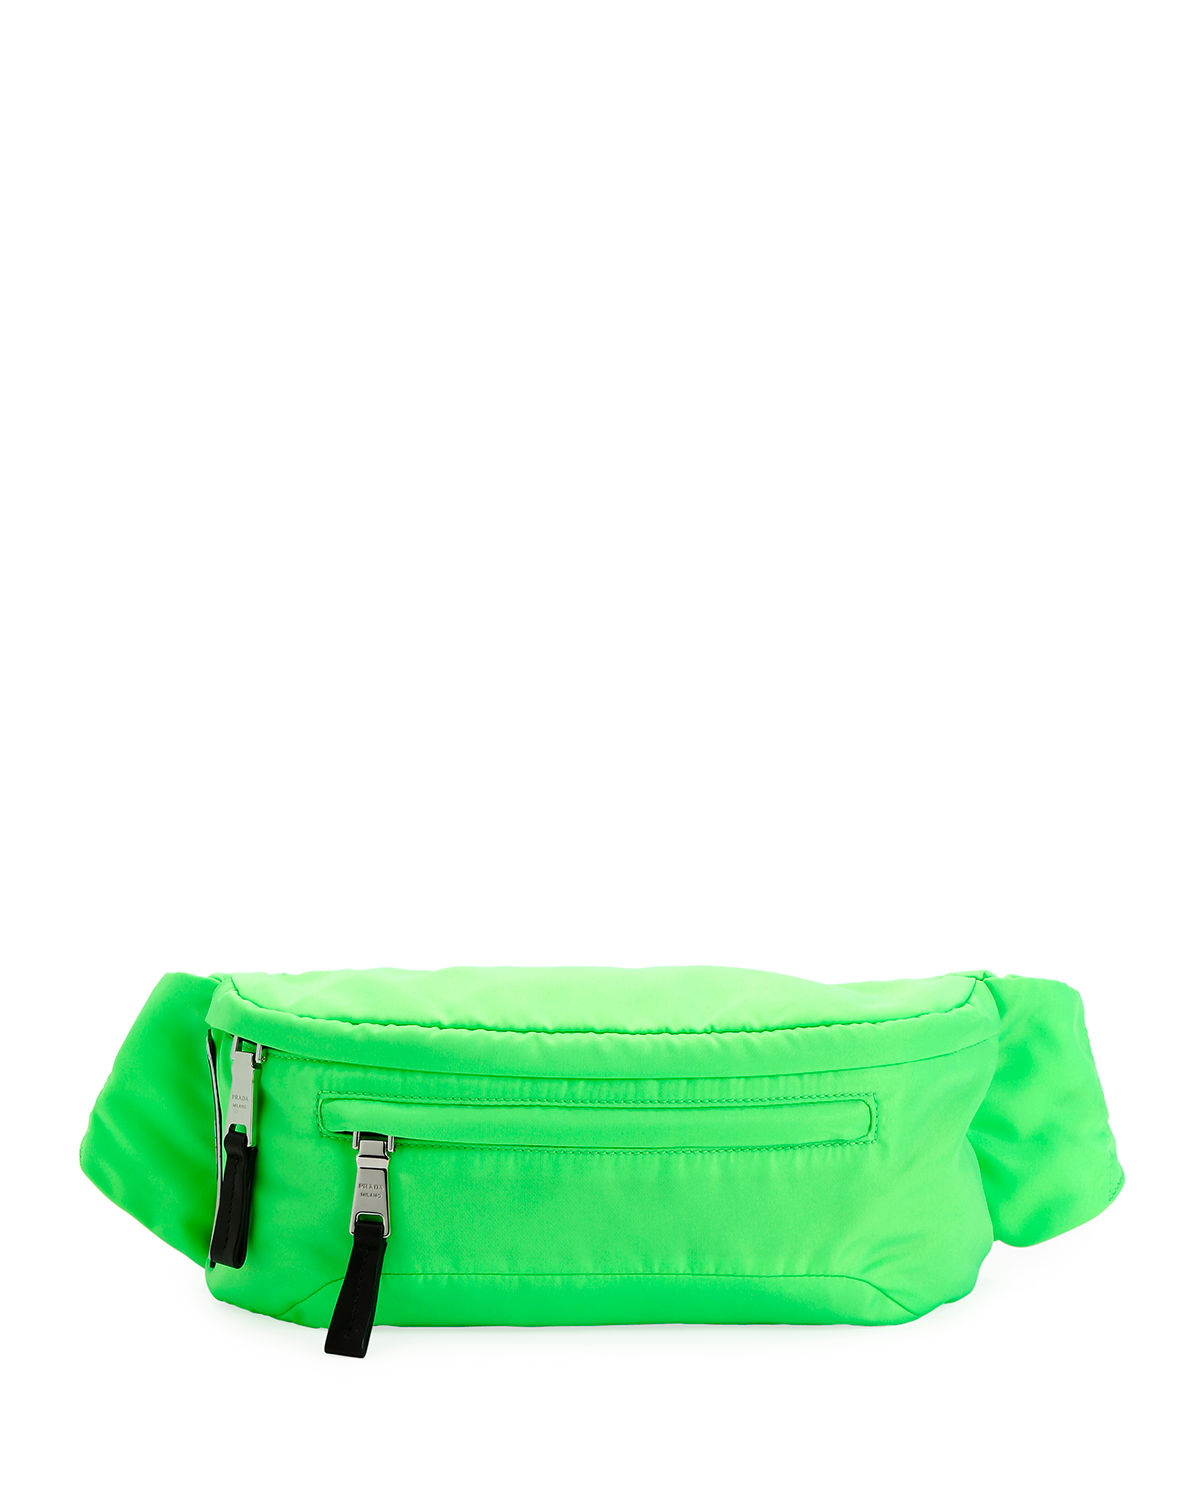 8309c1b8a983 Prada Men s Nylon Belt Bag Fanny Pack with Fluorescent Lining ...